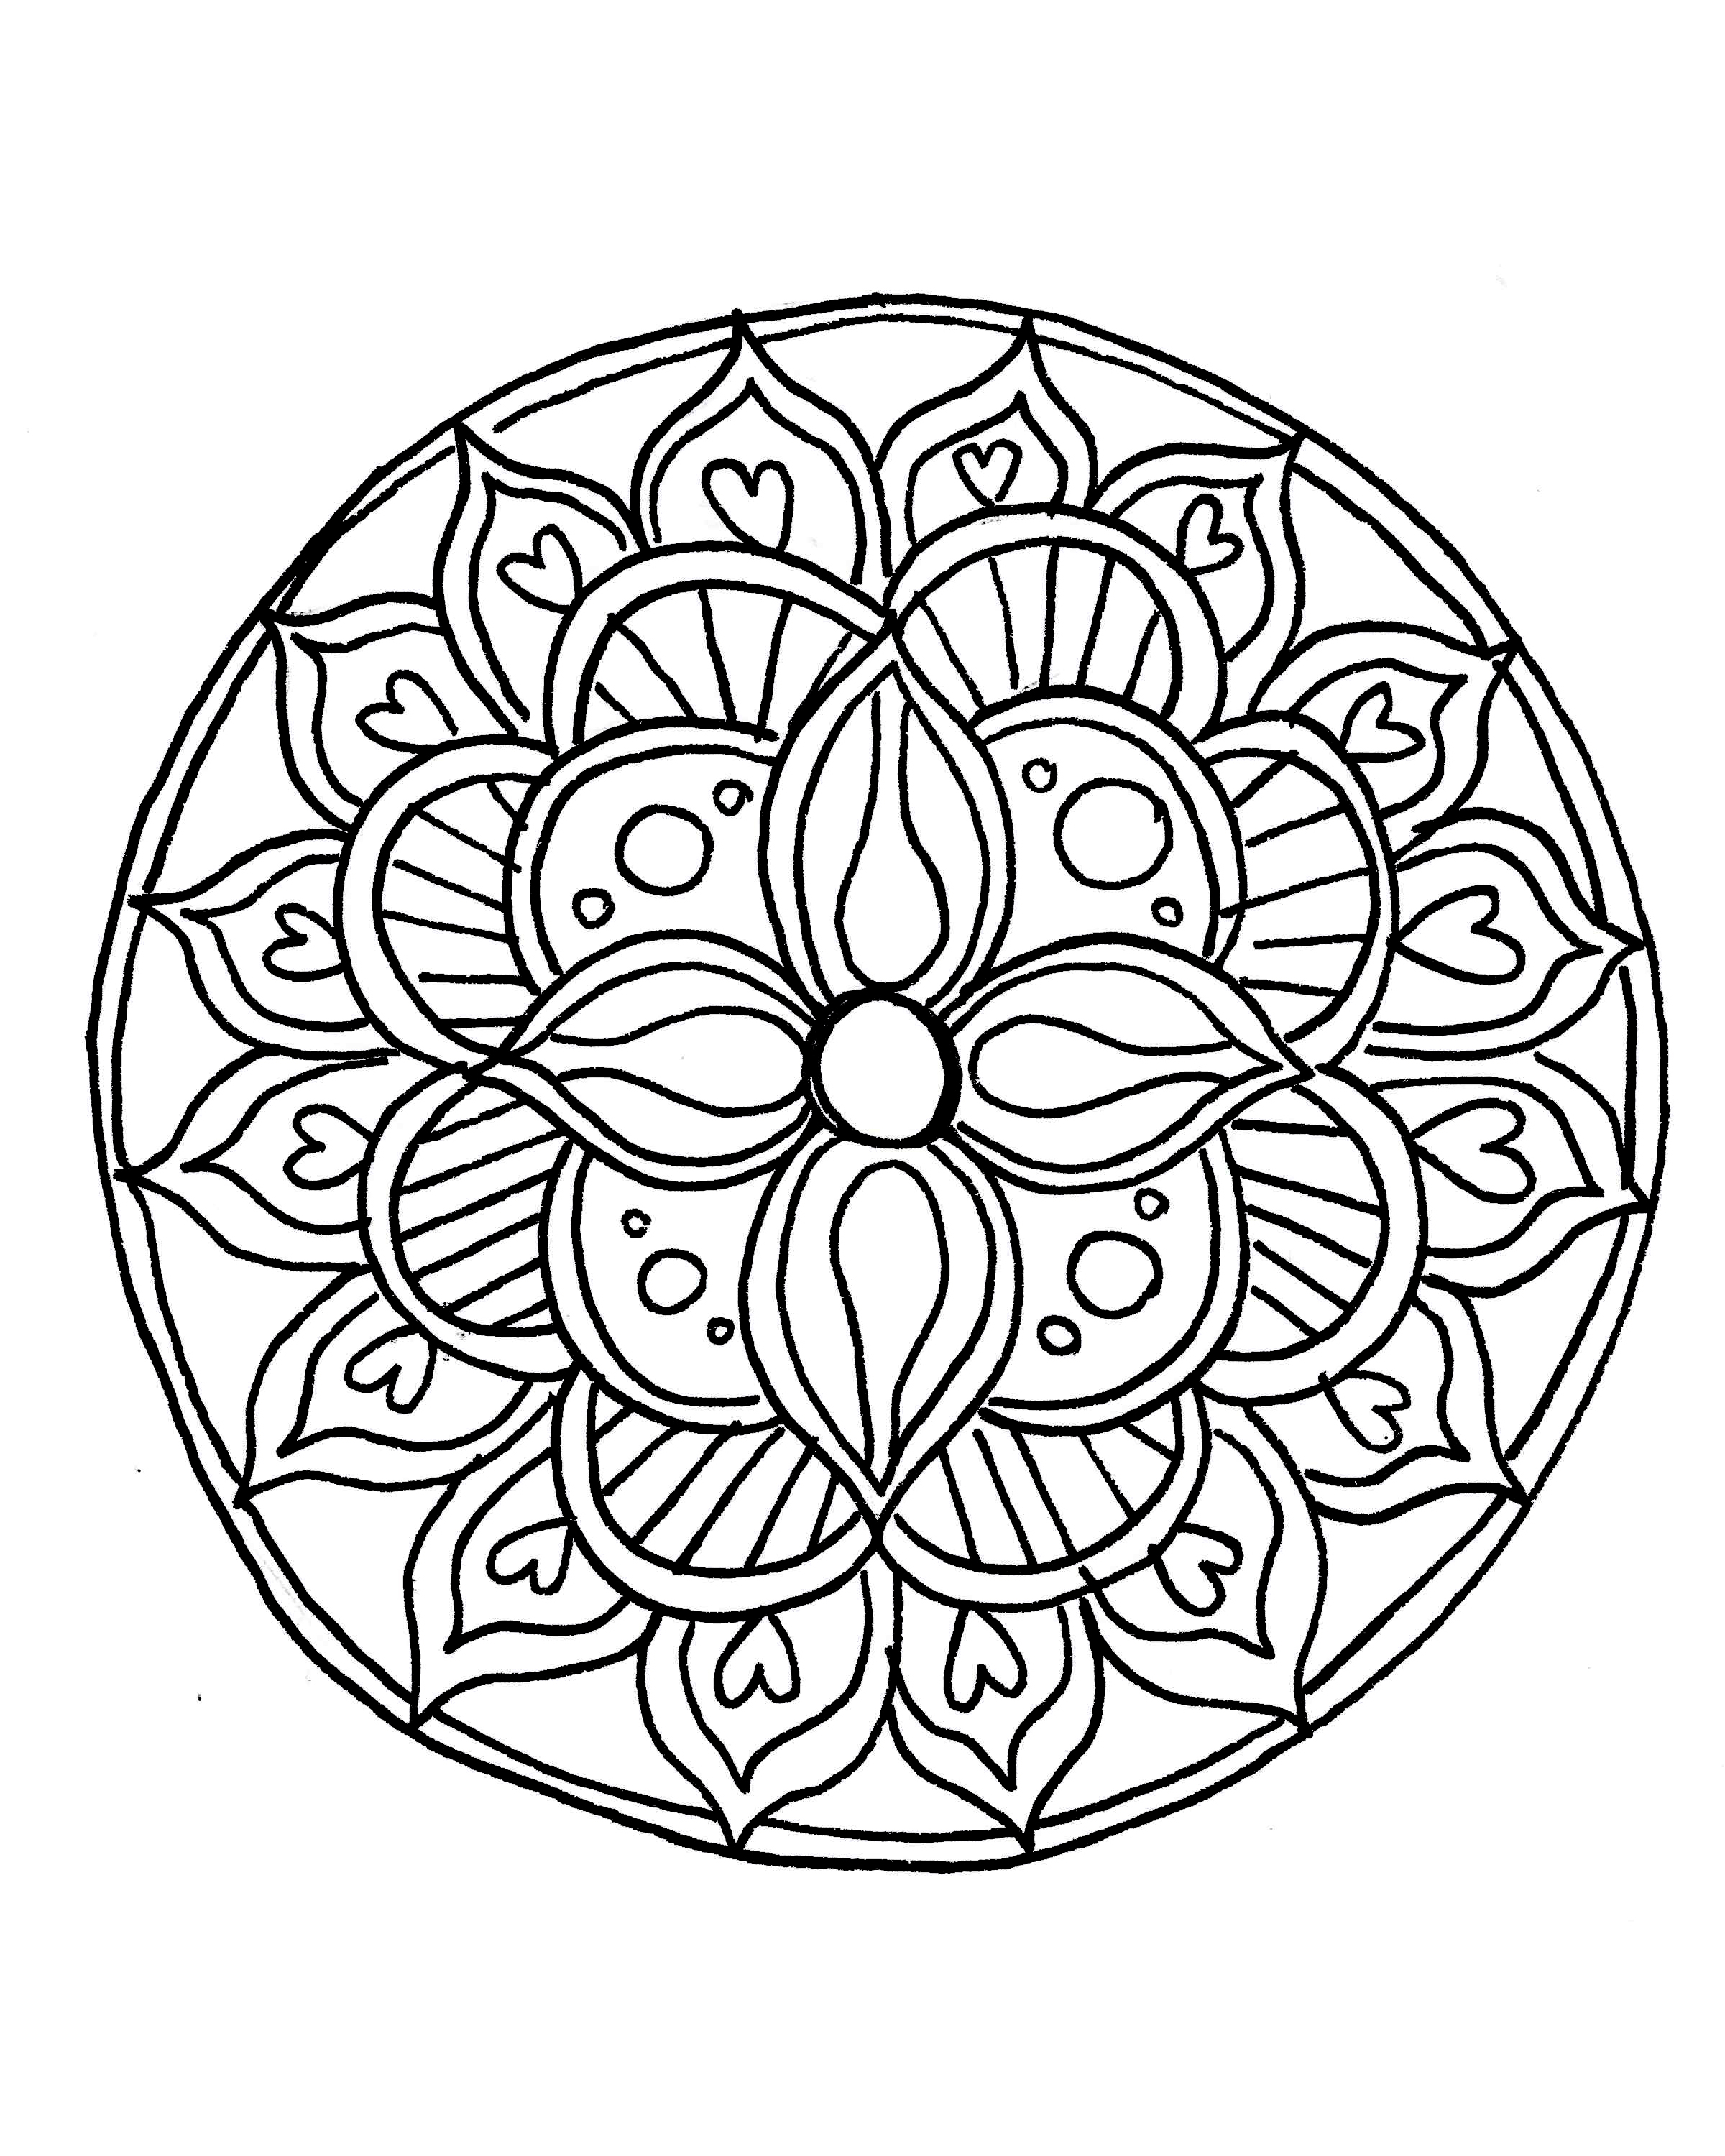 2400x3000 Relaxation Coloring Pages, Relaxing